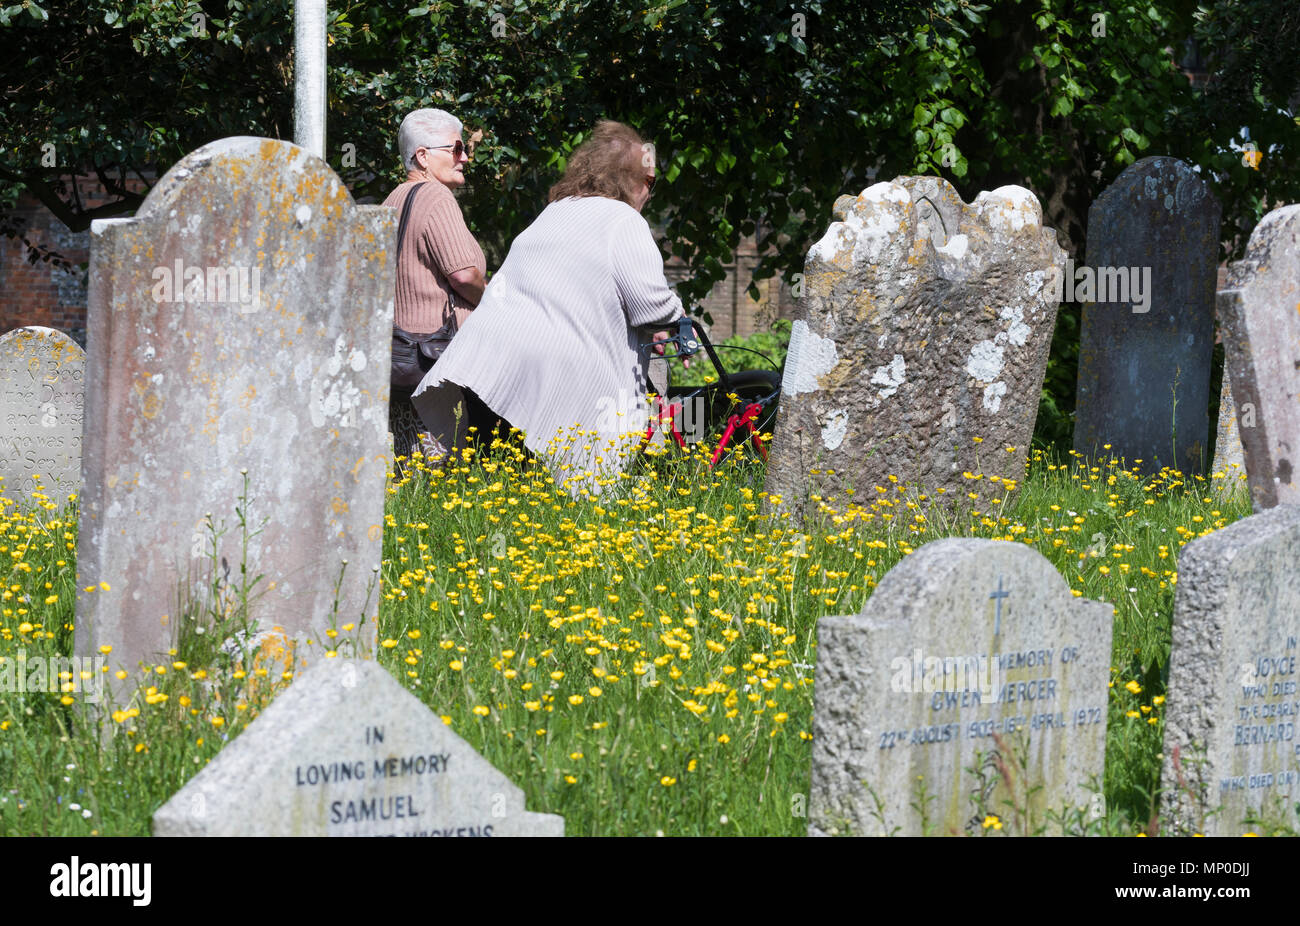 People walking through a graveyard with Buttercups growing amongst the old gravestones, in the UK. - Stock Image